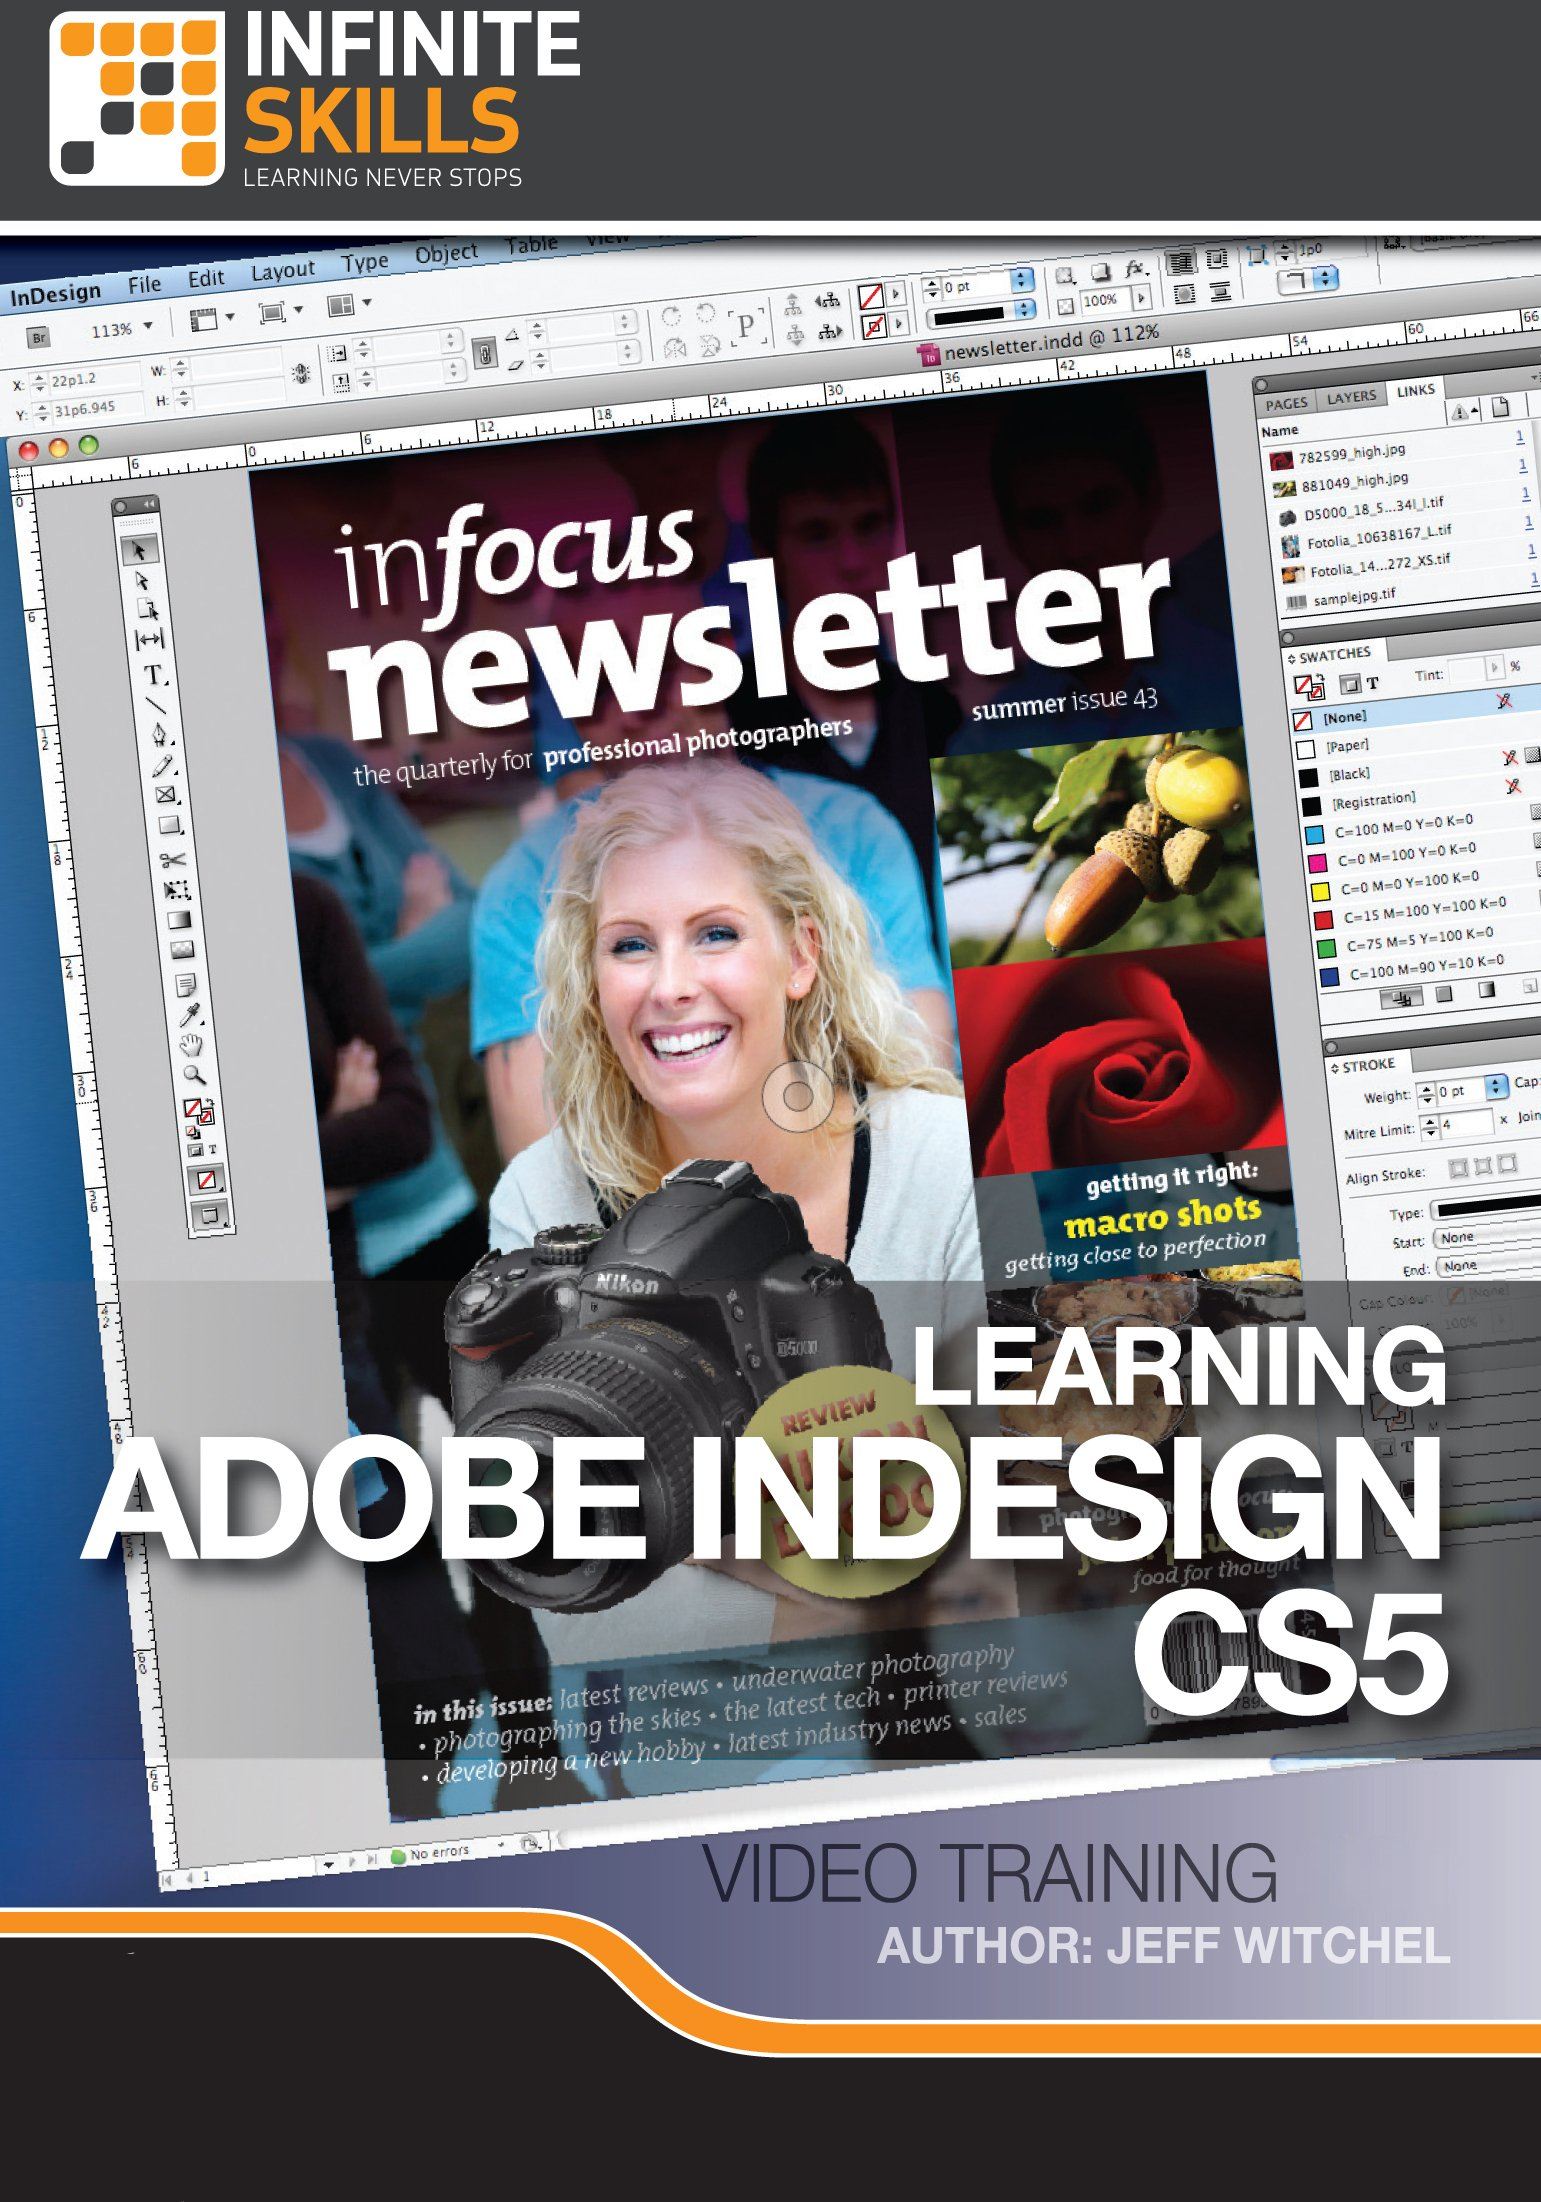 Adobe InDesign CS5 Training Course [Download]